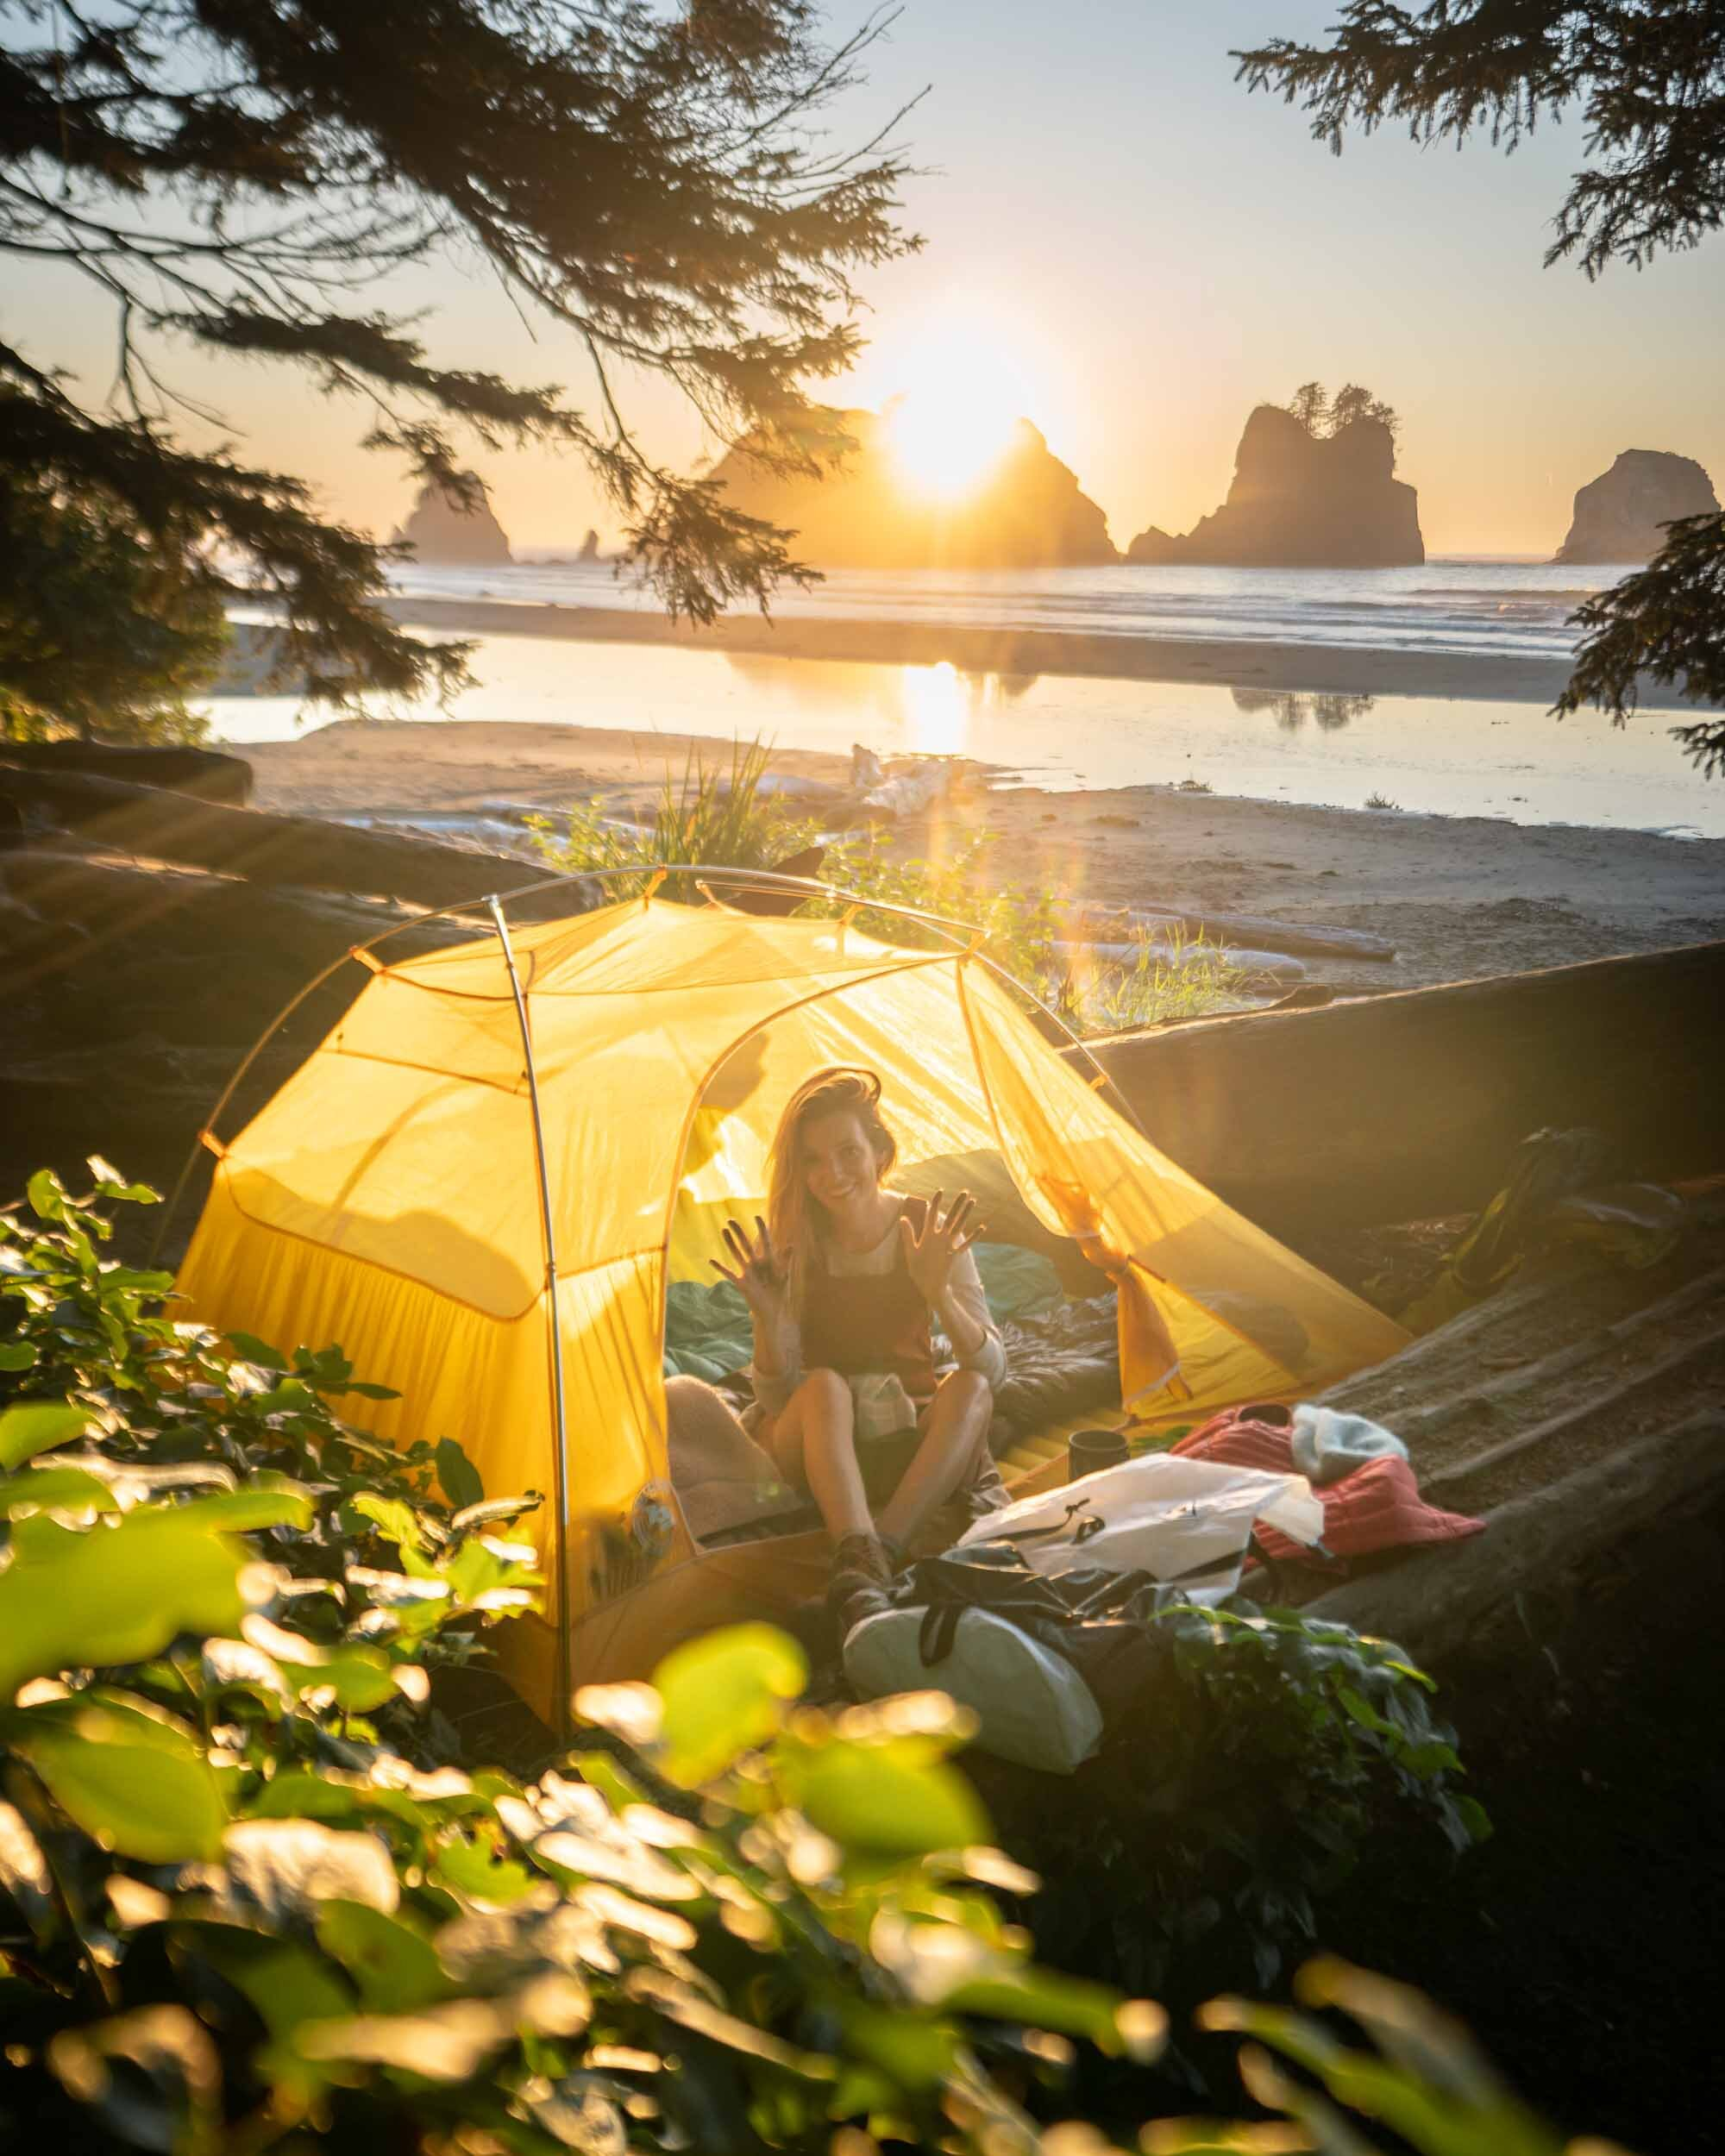 Camping on Shi Shi Beach in Washington State. Wearing: Toad&Co  Jumper  and The North Face  Long Sleeve Shirt . Also Shown: Big Agnes  2 Person Tent .